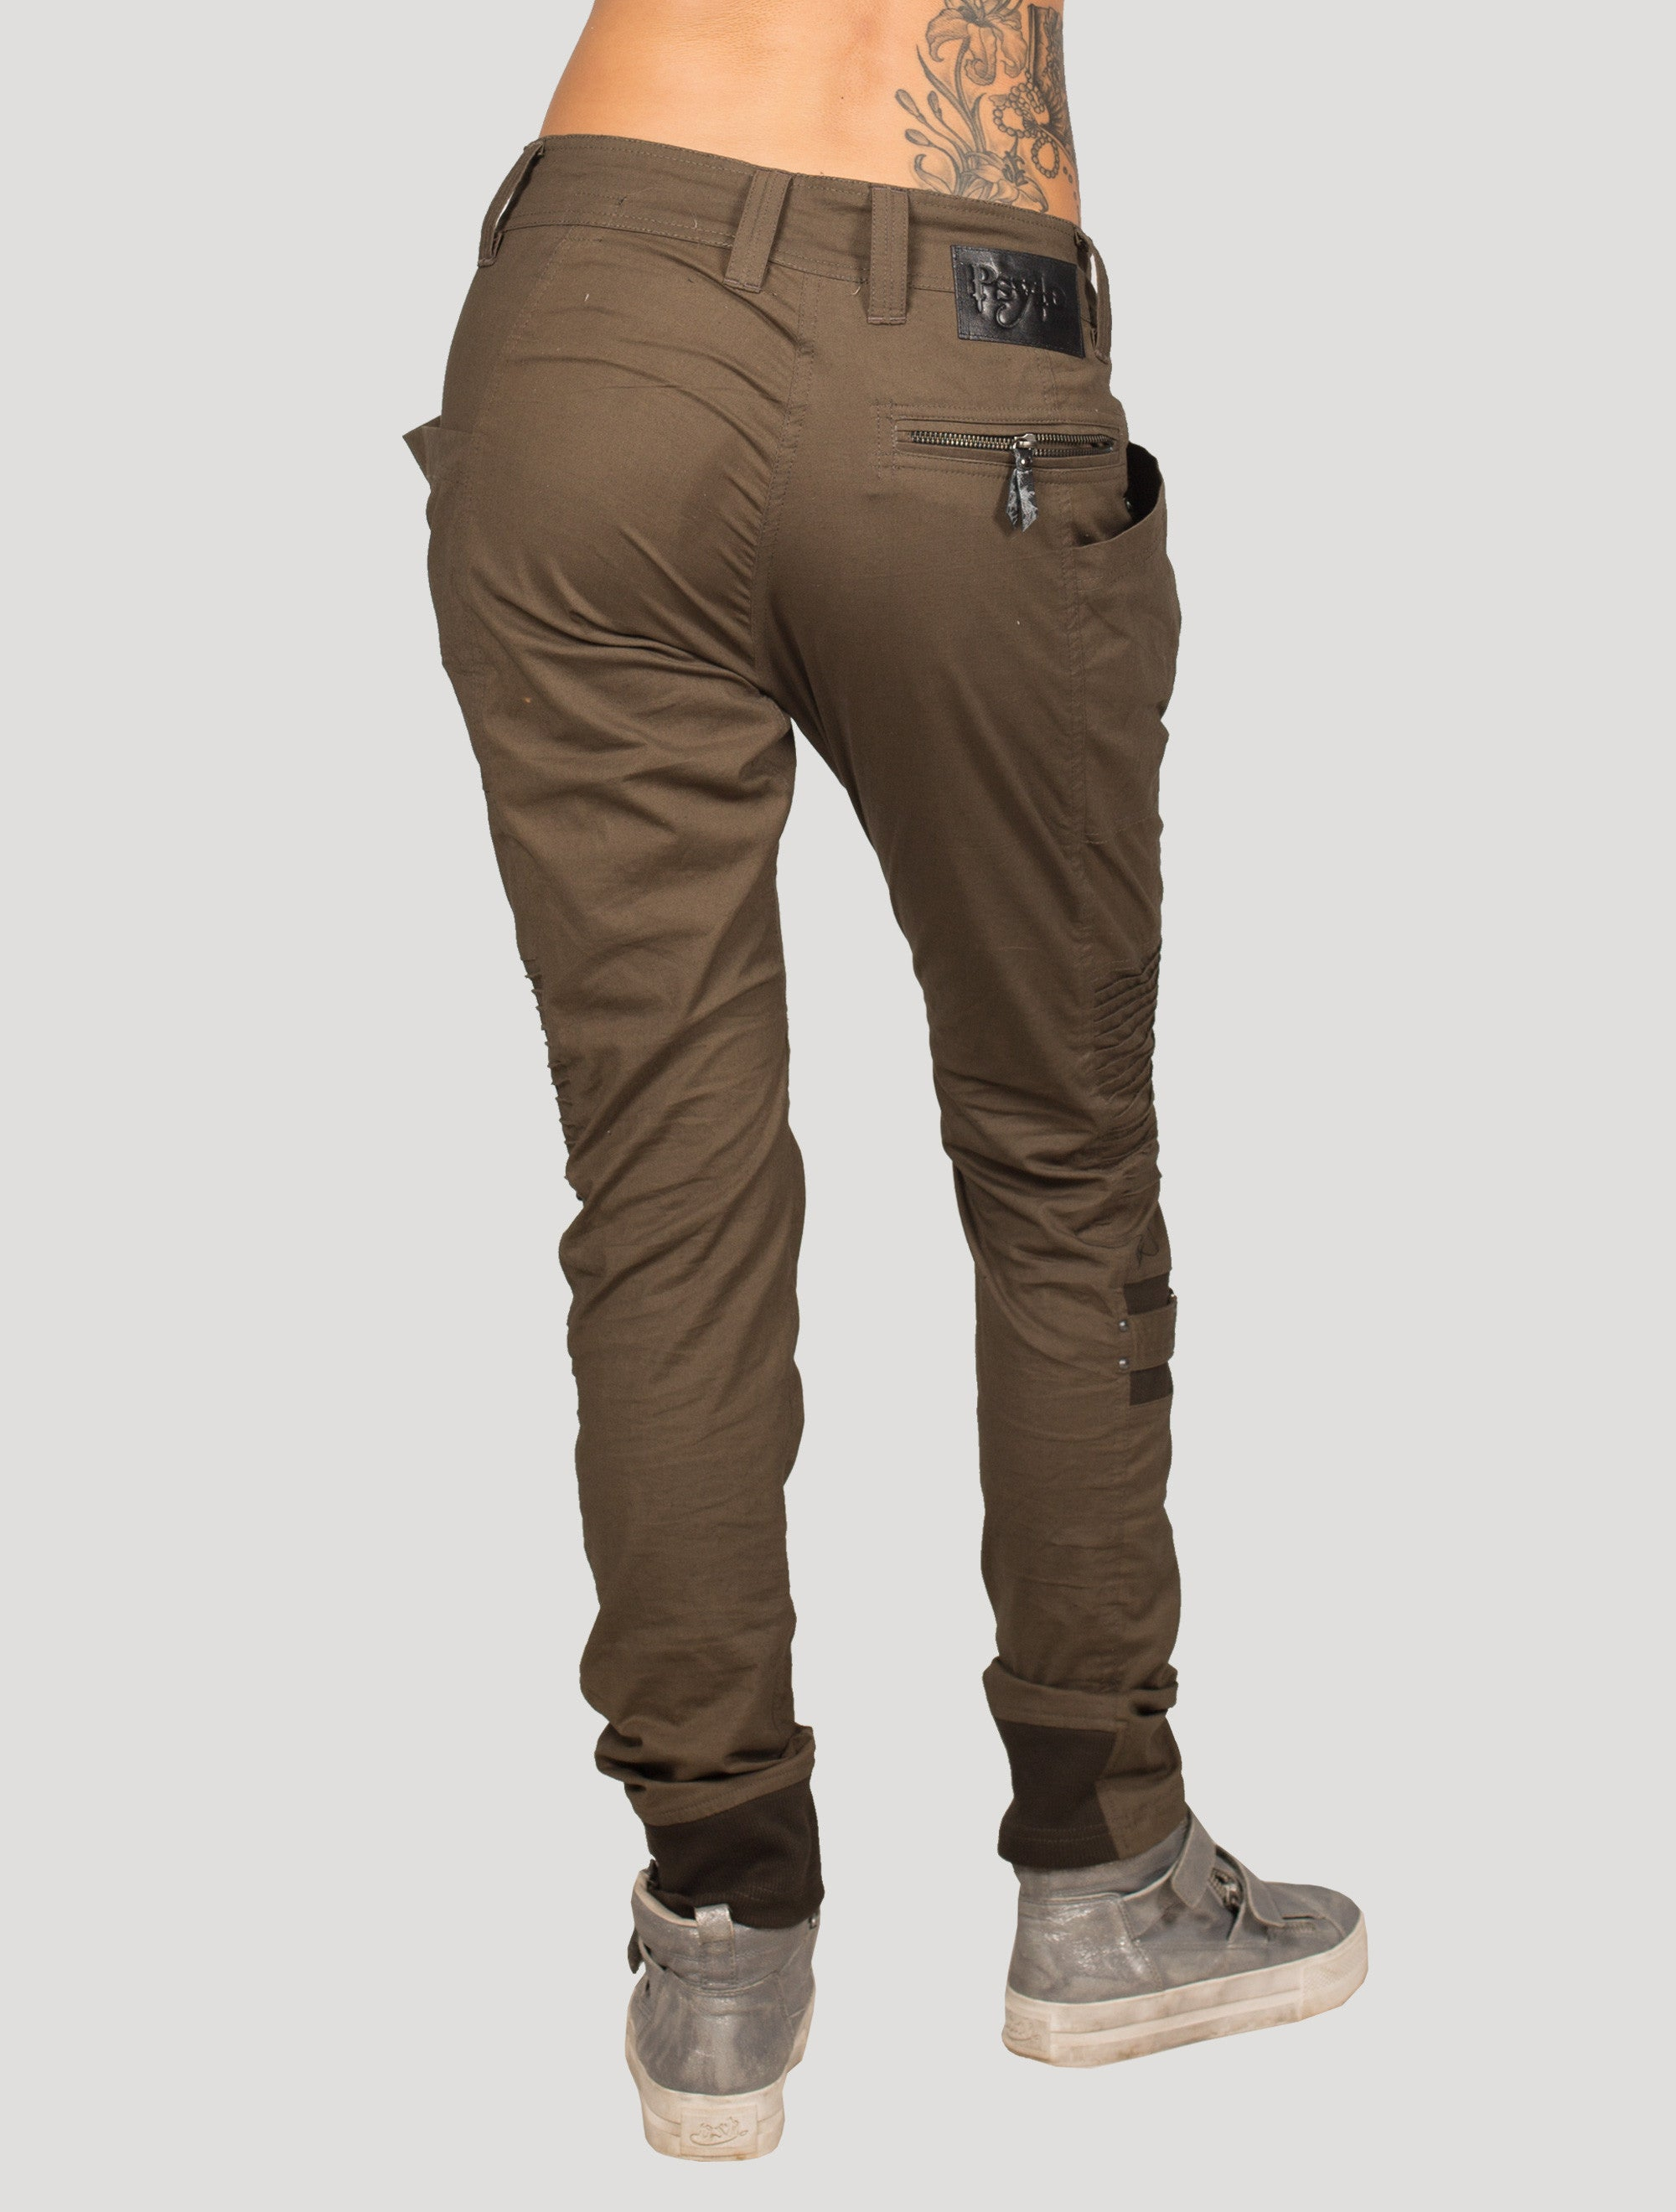 Pickpocket Pants